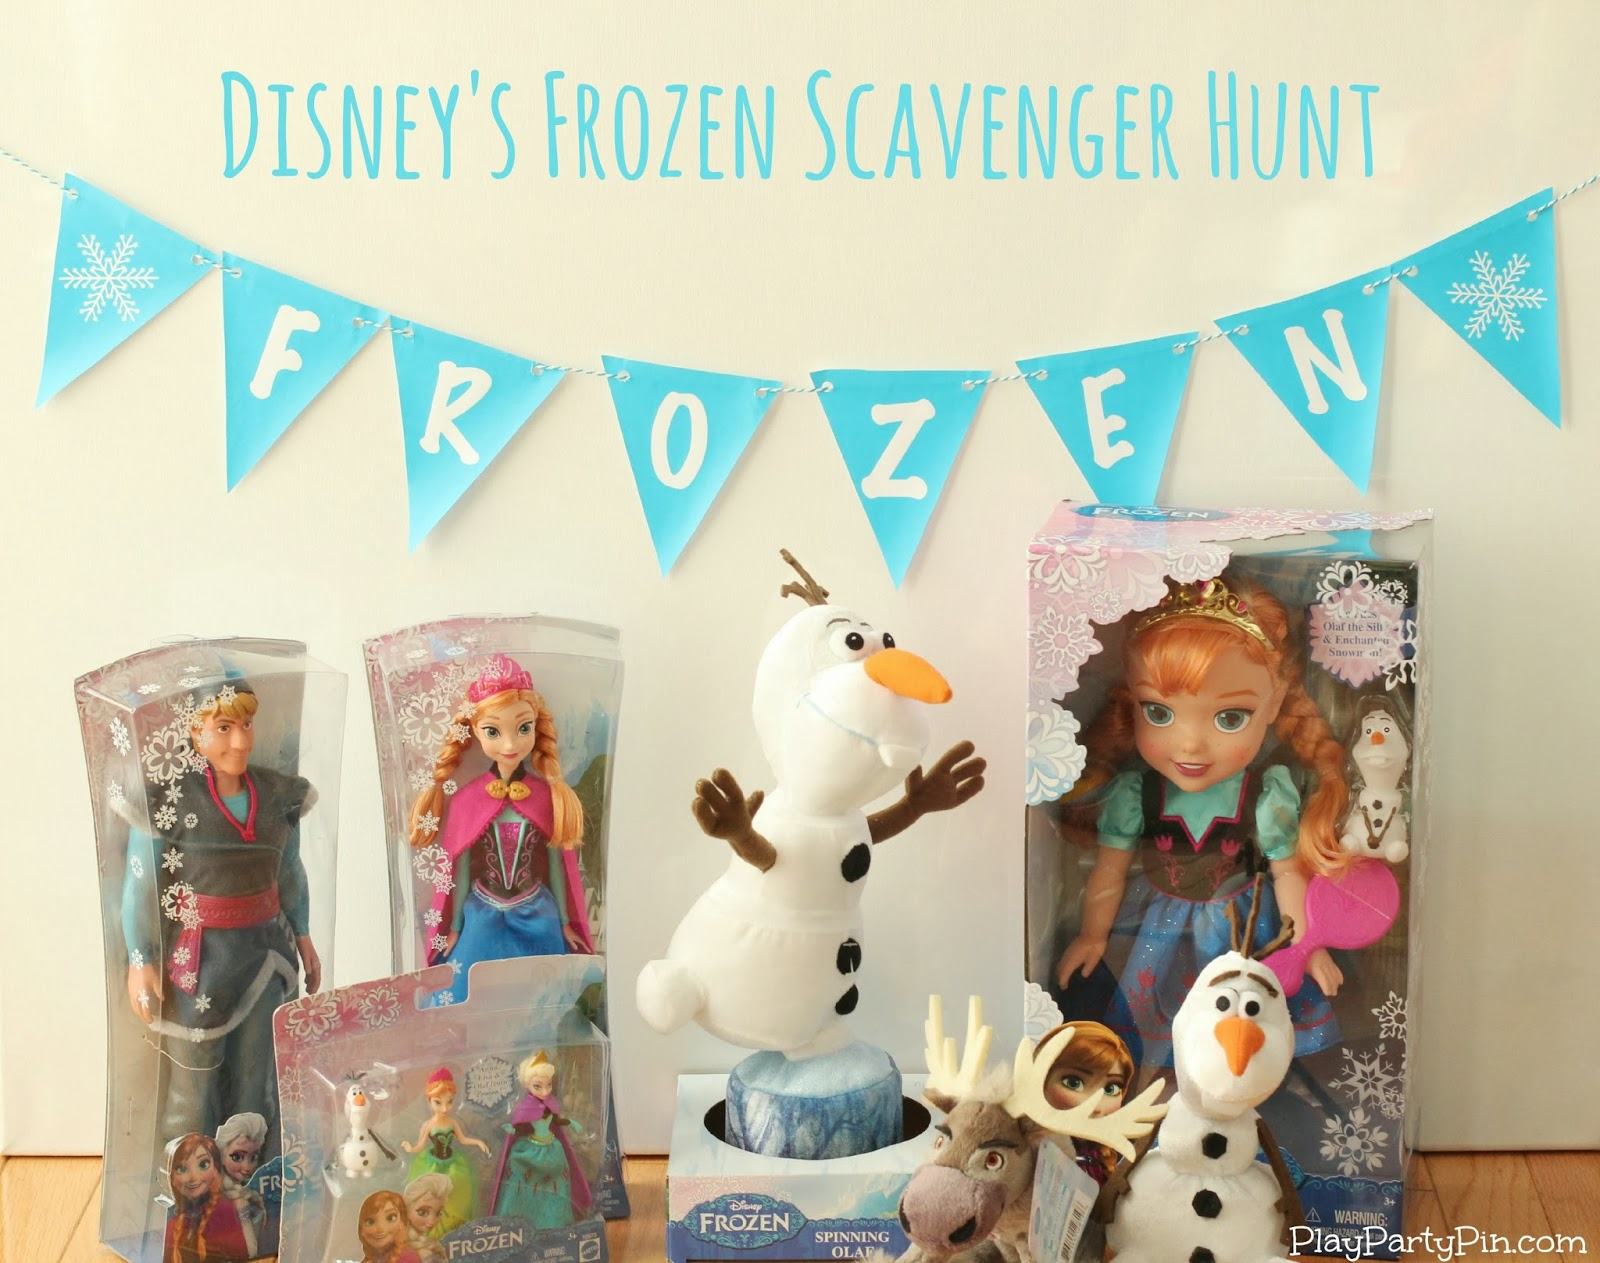 Disney's Frozen merchandise